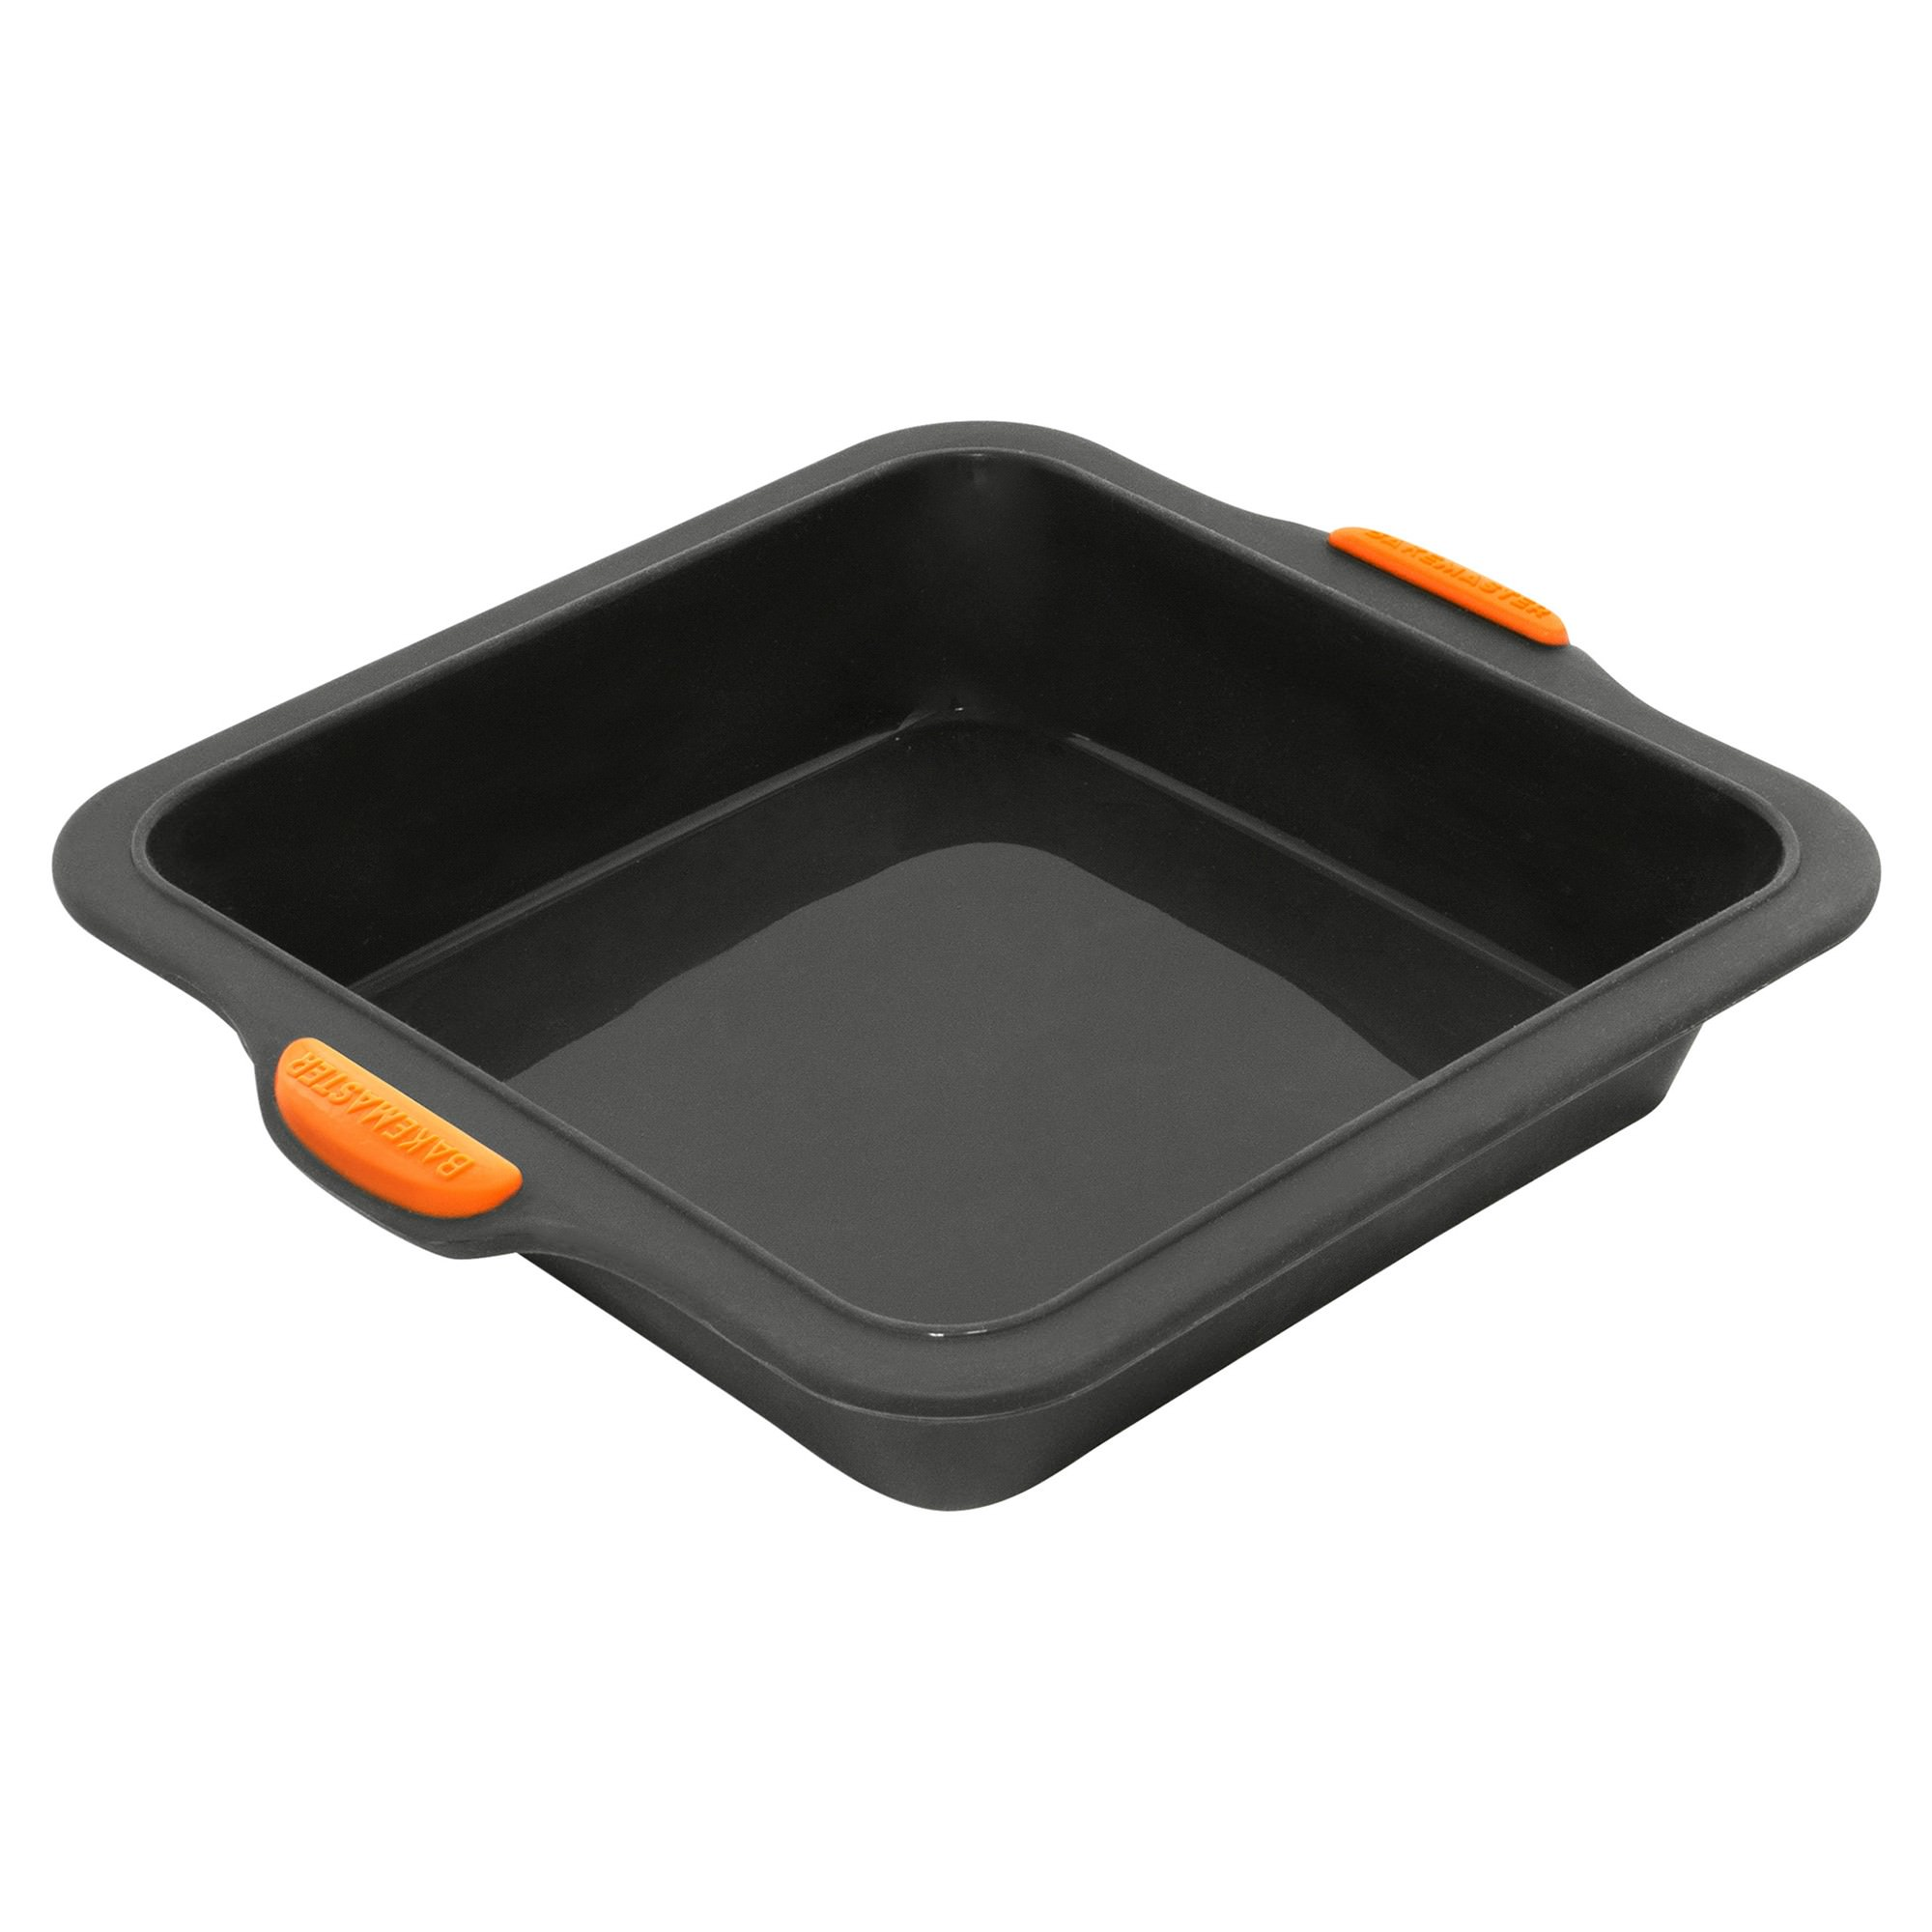 Bakemaster Reinforced Silicone Square Cake Pan, 20cm